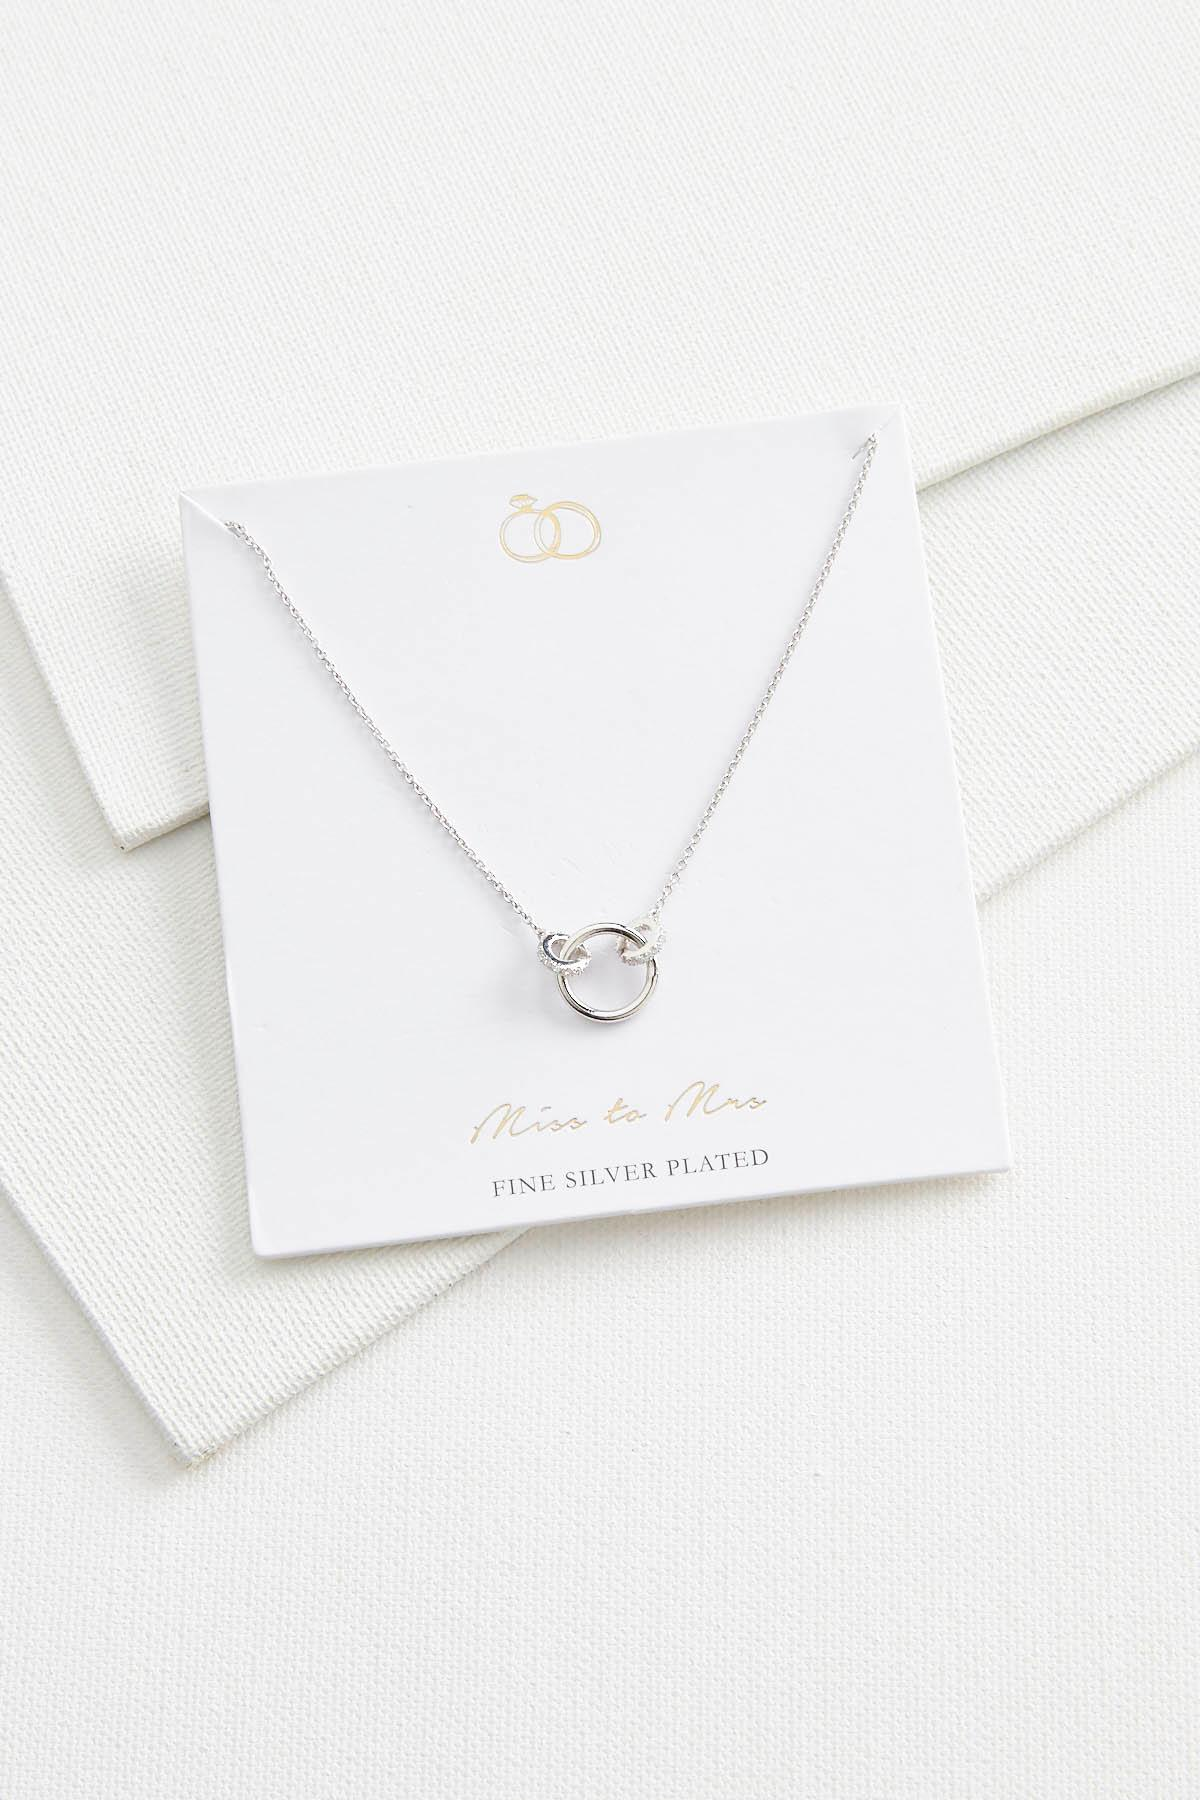 Miss To Mrs Pendant Necklace